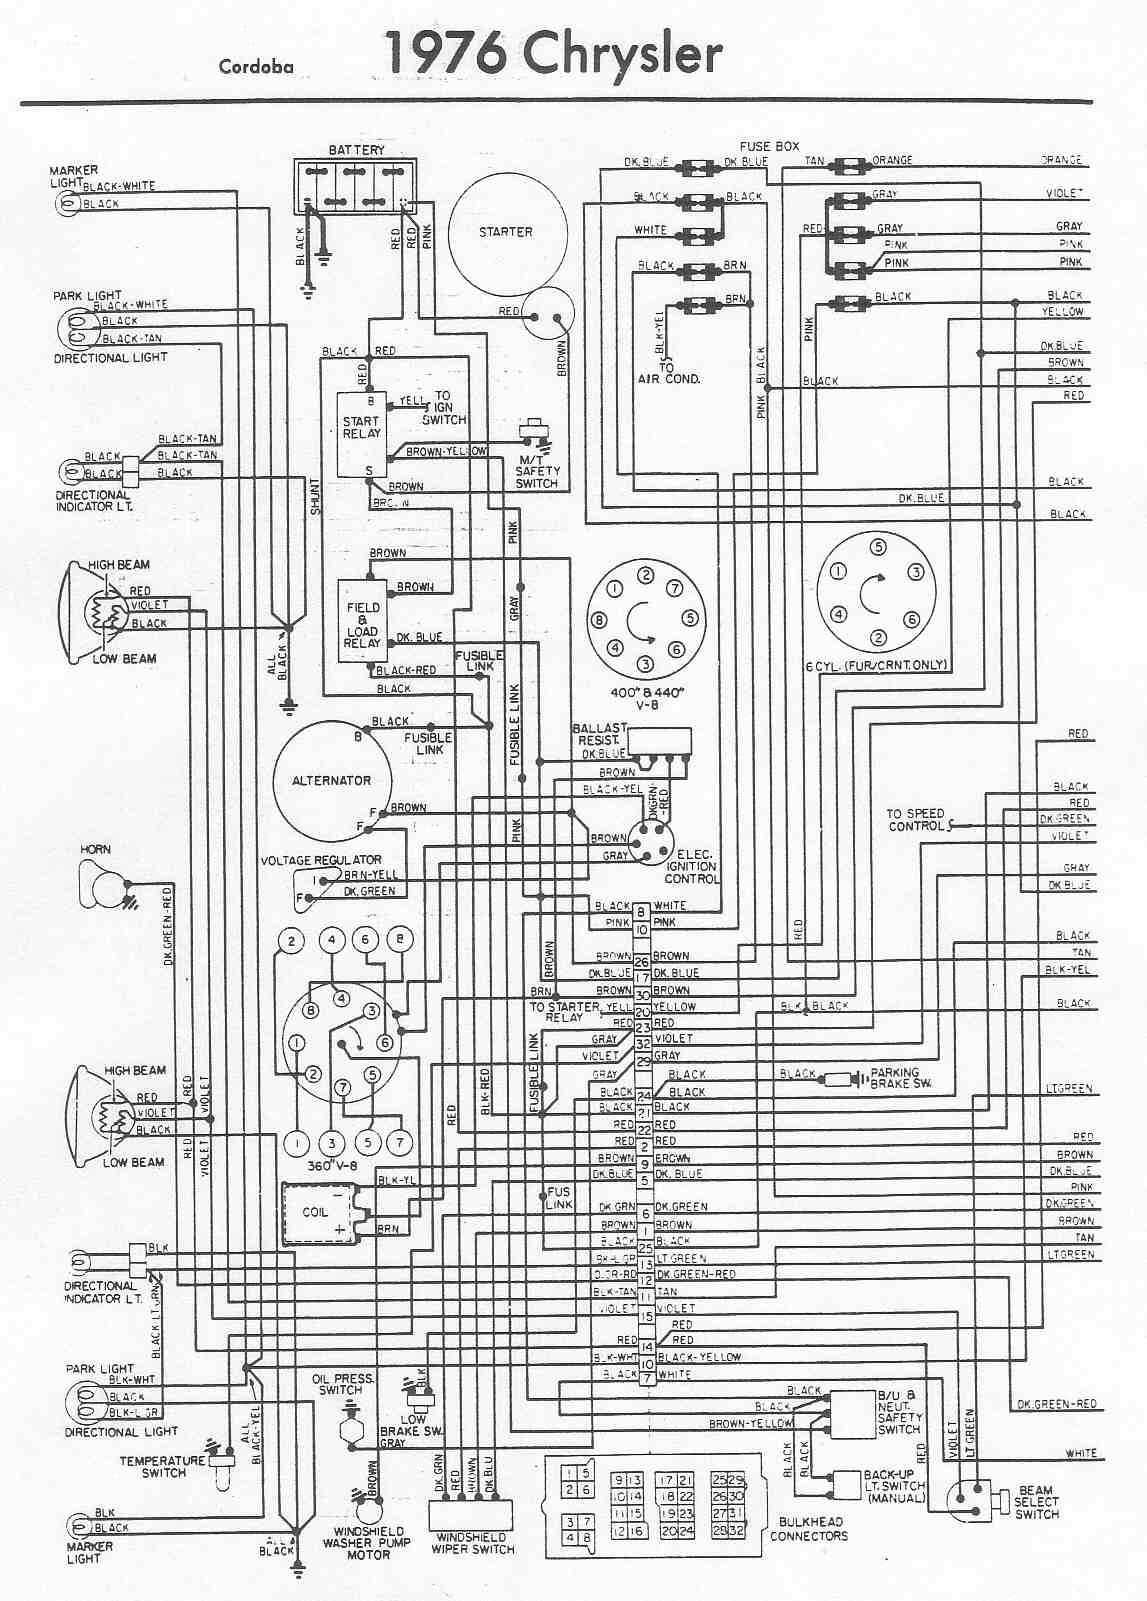 1965 Chrysler Newport Wiring Diagram Detailed Schematics 1968 Convertible Schematic Fuse Box U2022 Dodge Polara